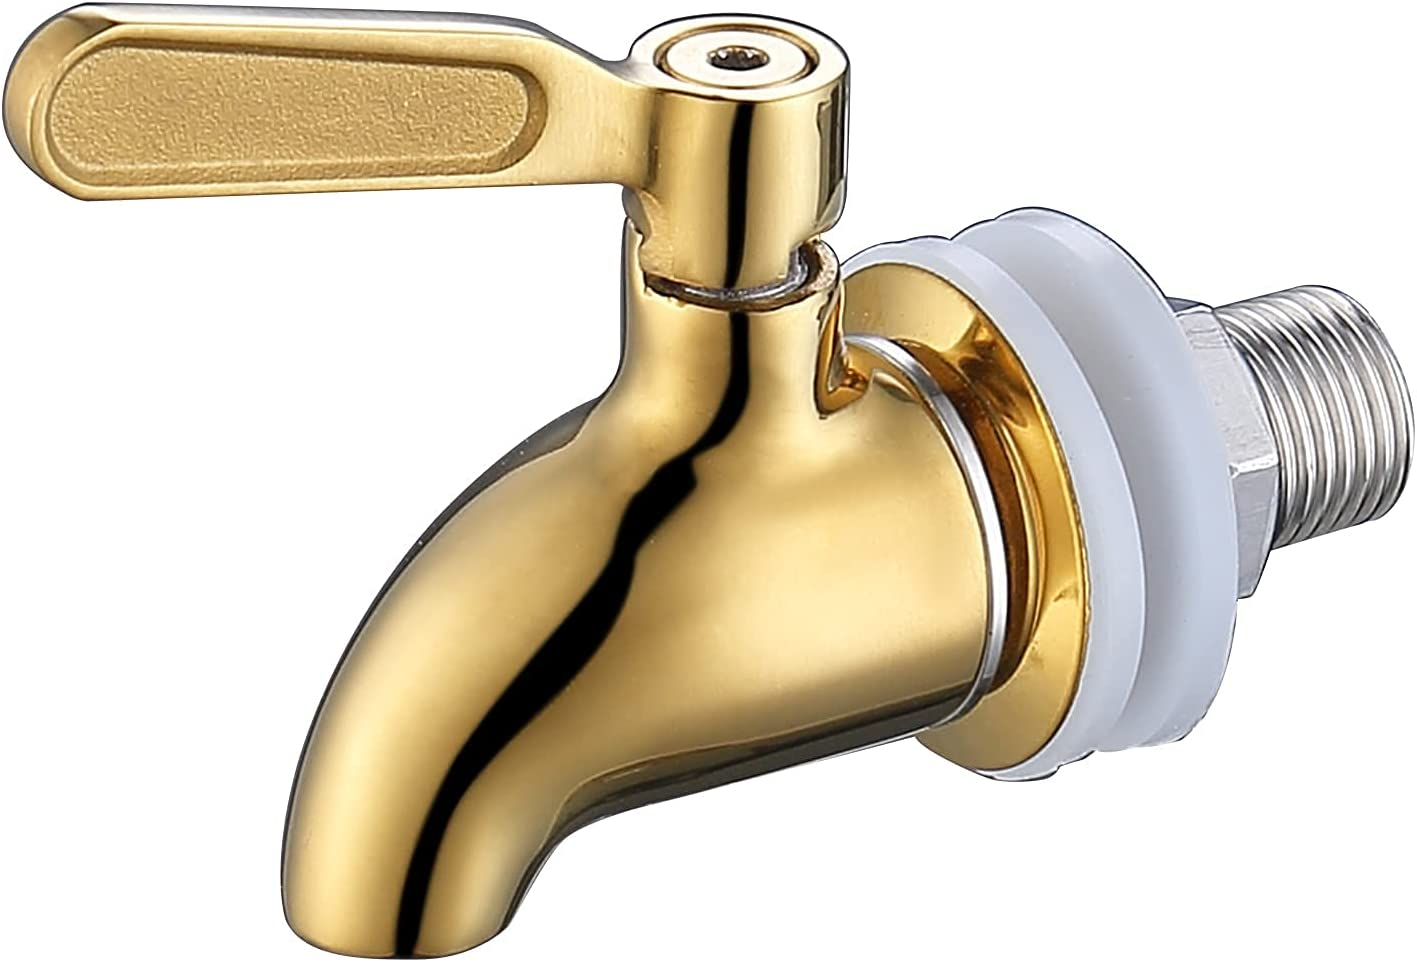 Beverage Dispenser Replacement Spigot,Stainless Steel Polished Finished, Water Dispenser Replacement Faucet Gold